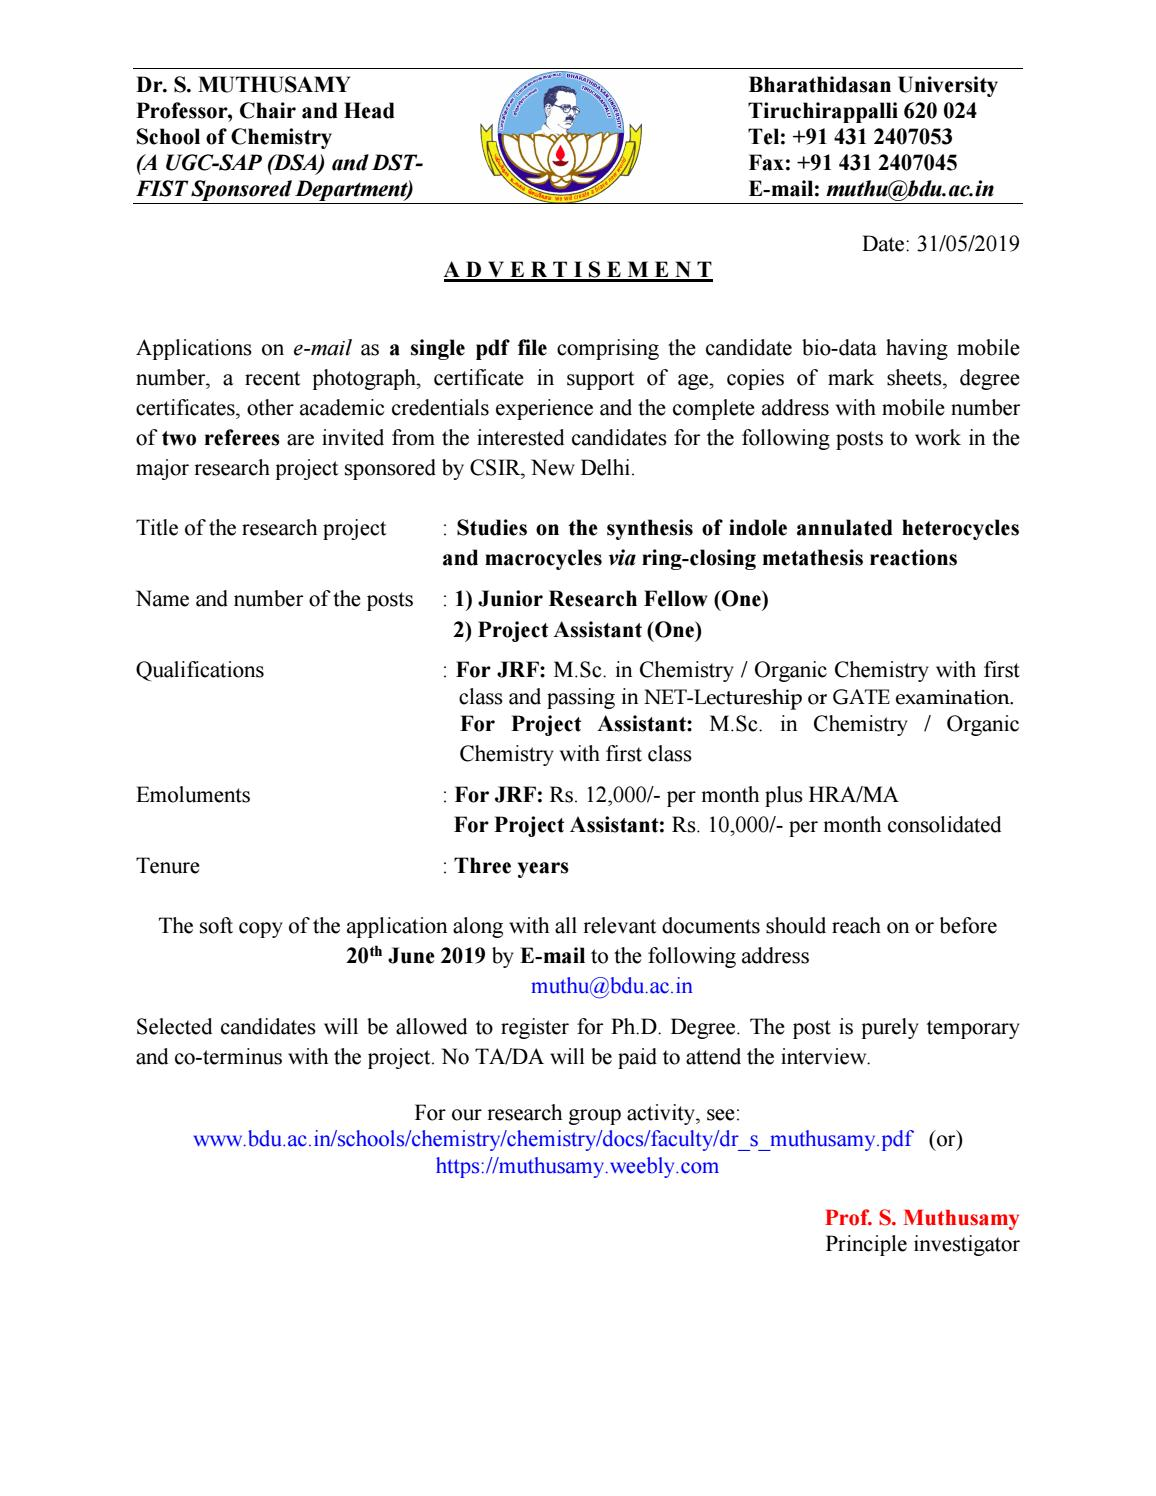 Recruitment of JRF under DST-SERB sponsored project @ BDU by